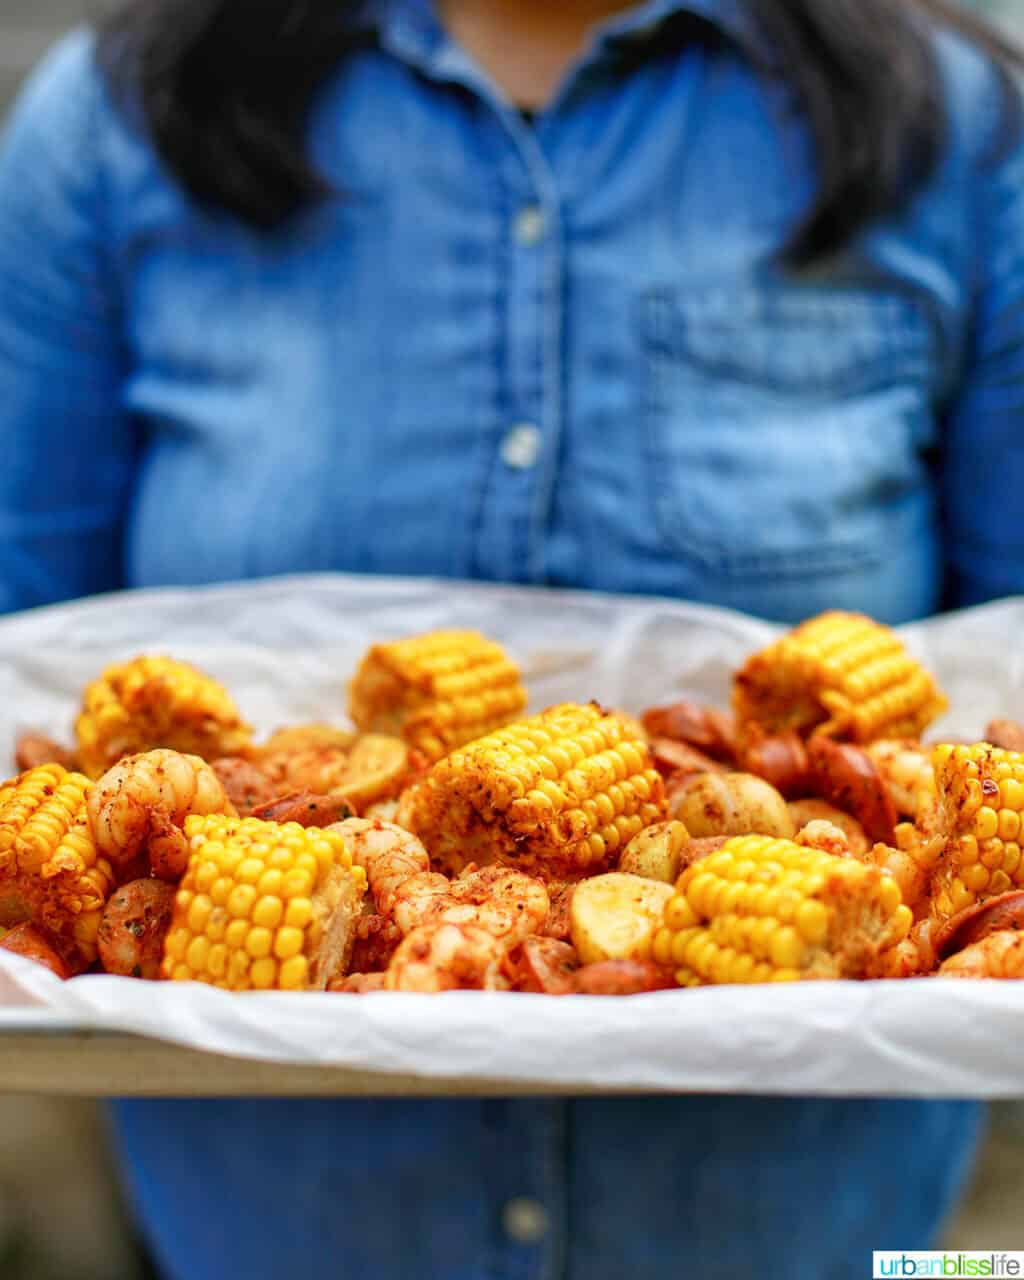 holding a tray of low country seafood boil foil packets against denim shirt